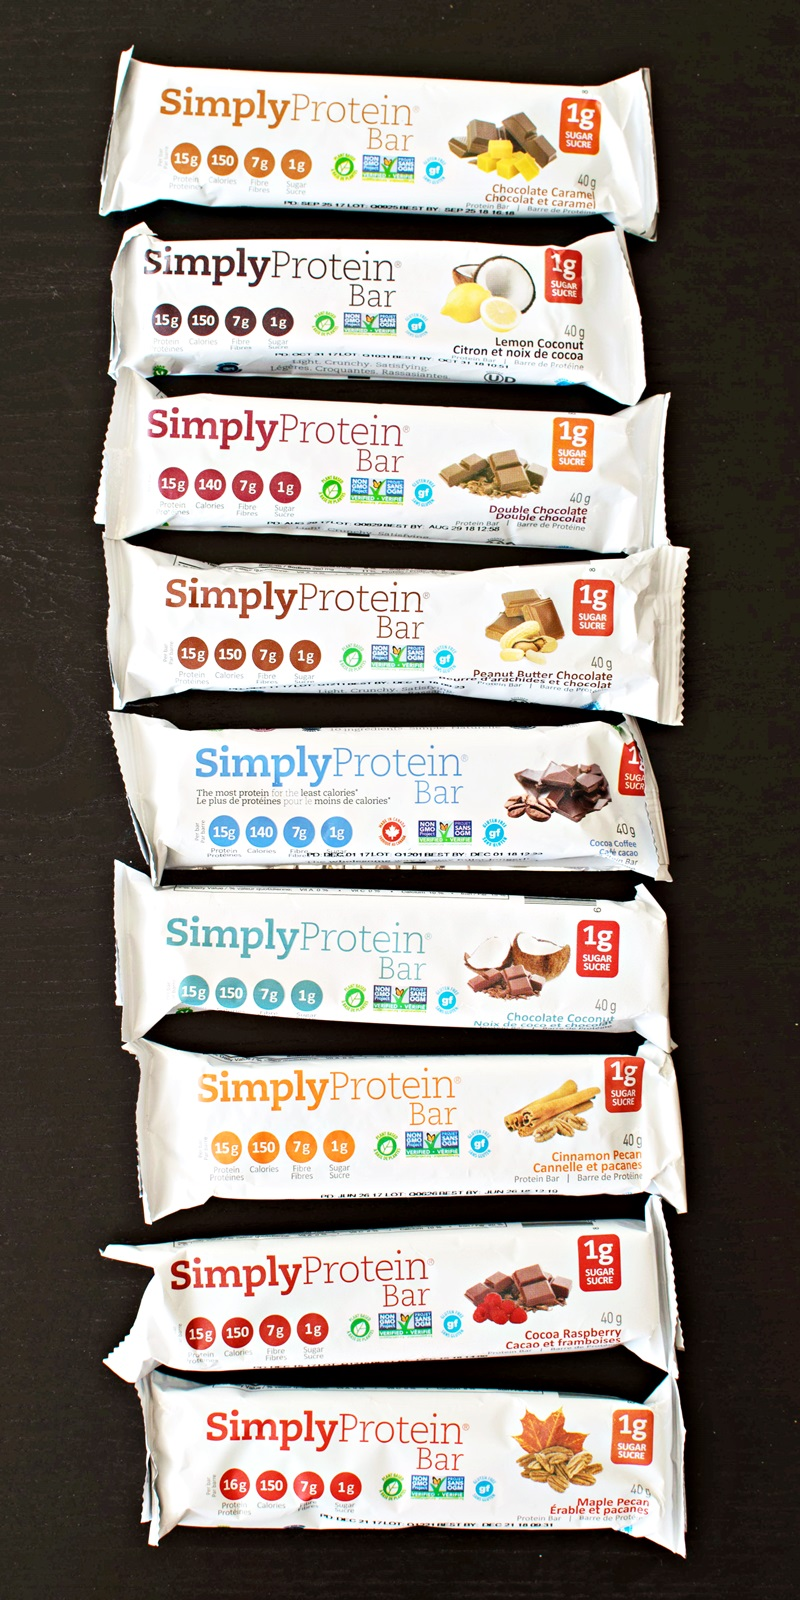 SimplyProtein Bars Review - All 9 Dairy-Free, Vegan, High-Protein, Insanely Low Sugar Flavors